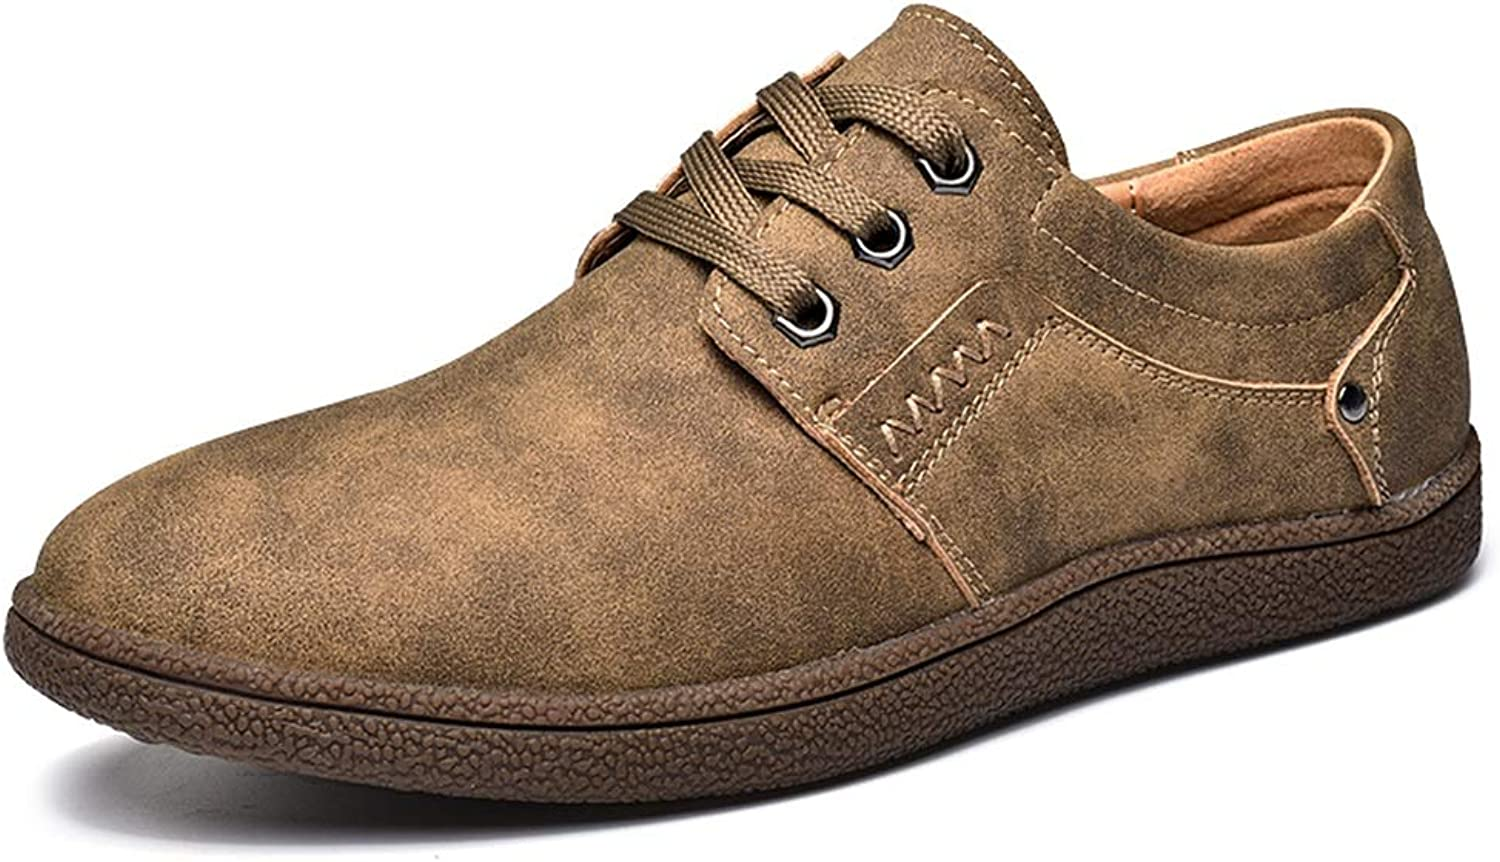 Easy Go Shopping Casual Oxford for Men Fashion Loafers Lace Up Comfortable Slip On Flats shoes Microfiber Upper Round Toe Abrasion Resistant Cricket shoes (color   Khaki, Size   8 UK)